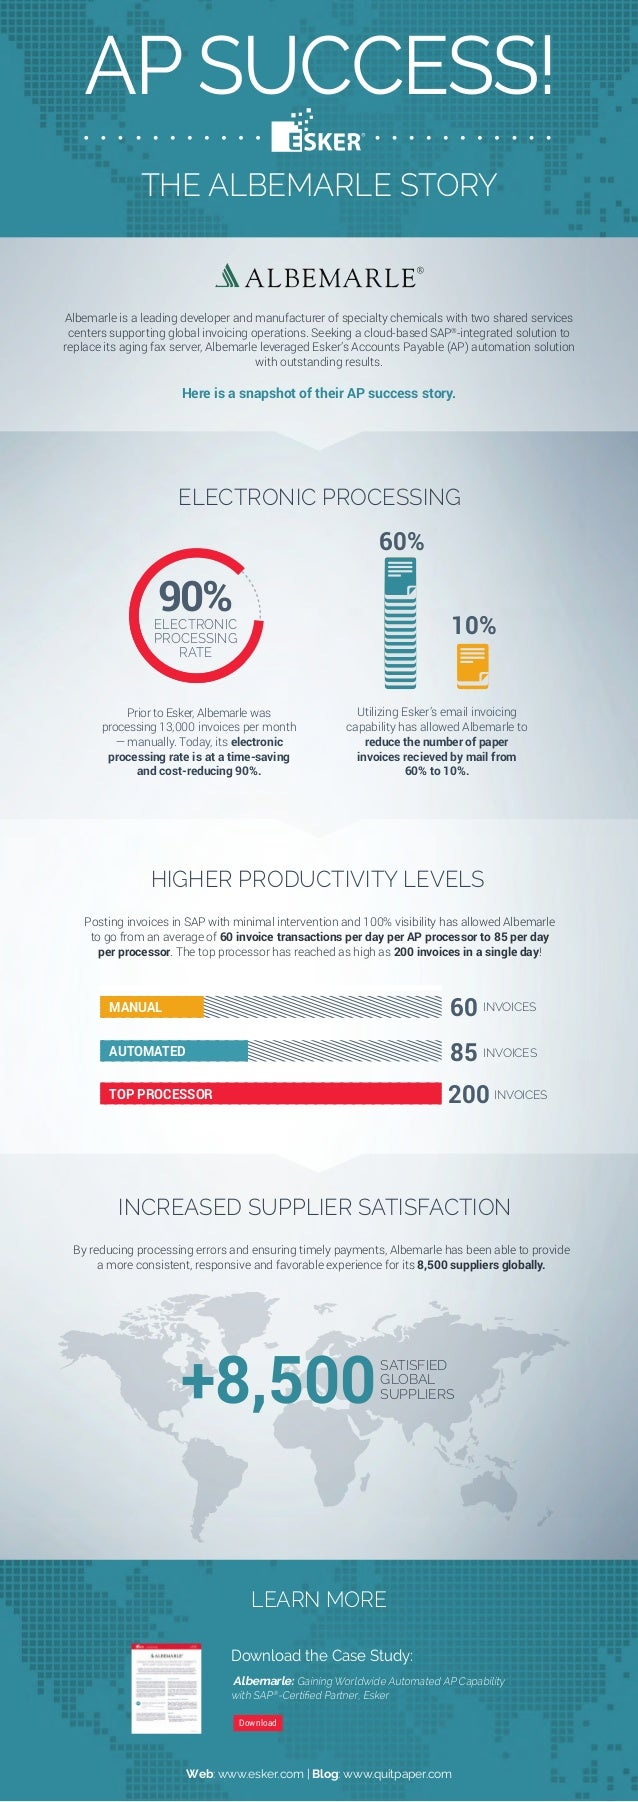 [INFOGRAPHIC] Accounts Payable Success -- A Story of Shared Services